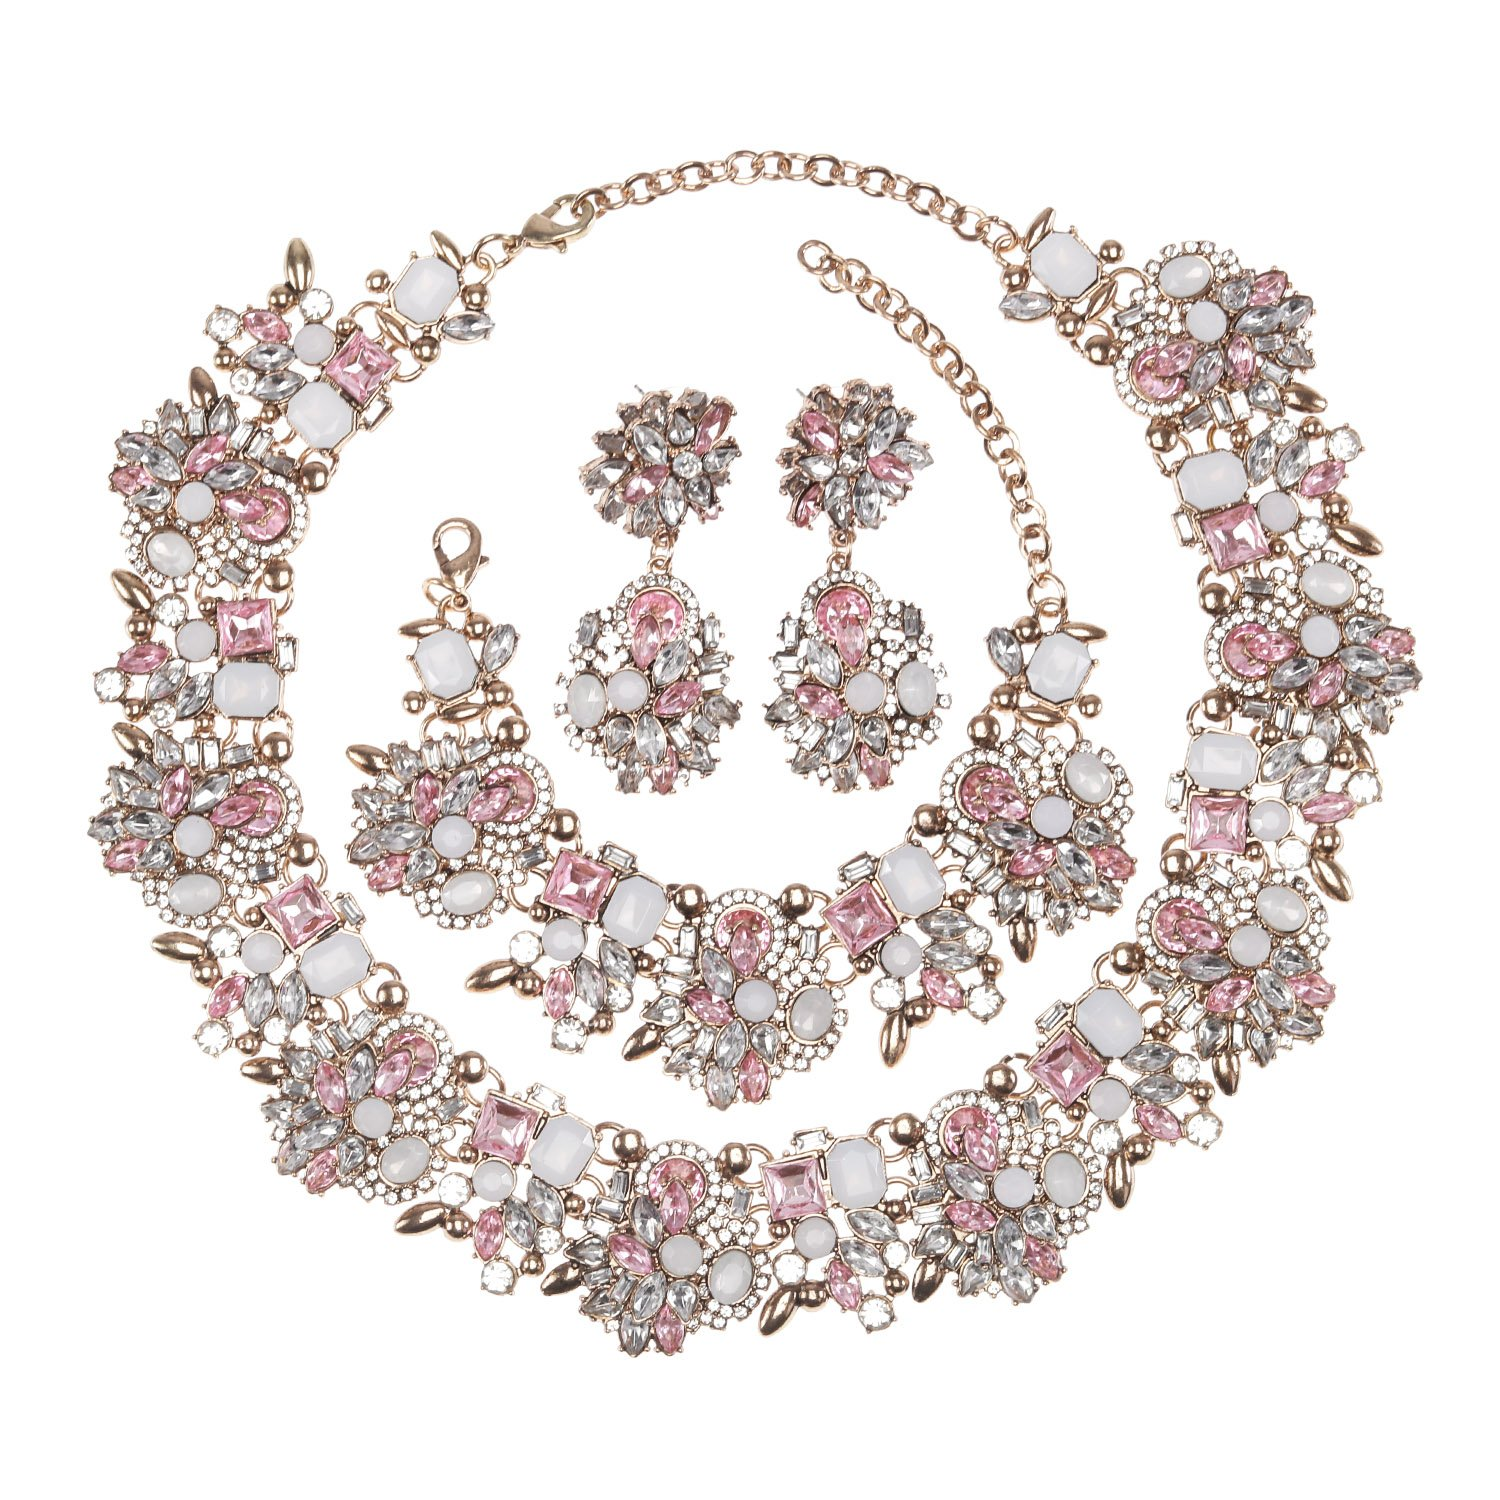 Holylove Light Pink Retro Style Statement Necklace Bracelet Earrings for Women Novelty Jewelry Set 1 with Gift Box-light pink 3pcs